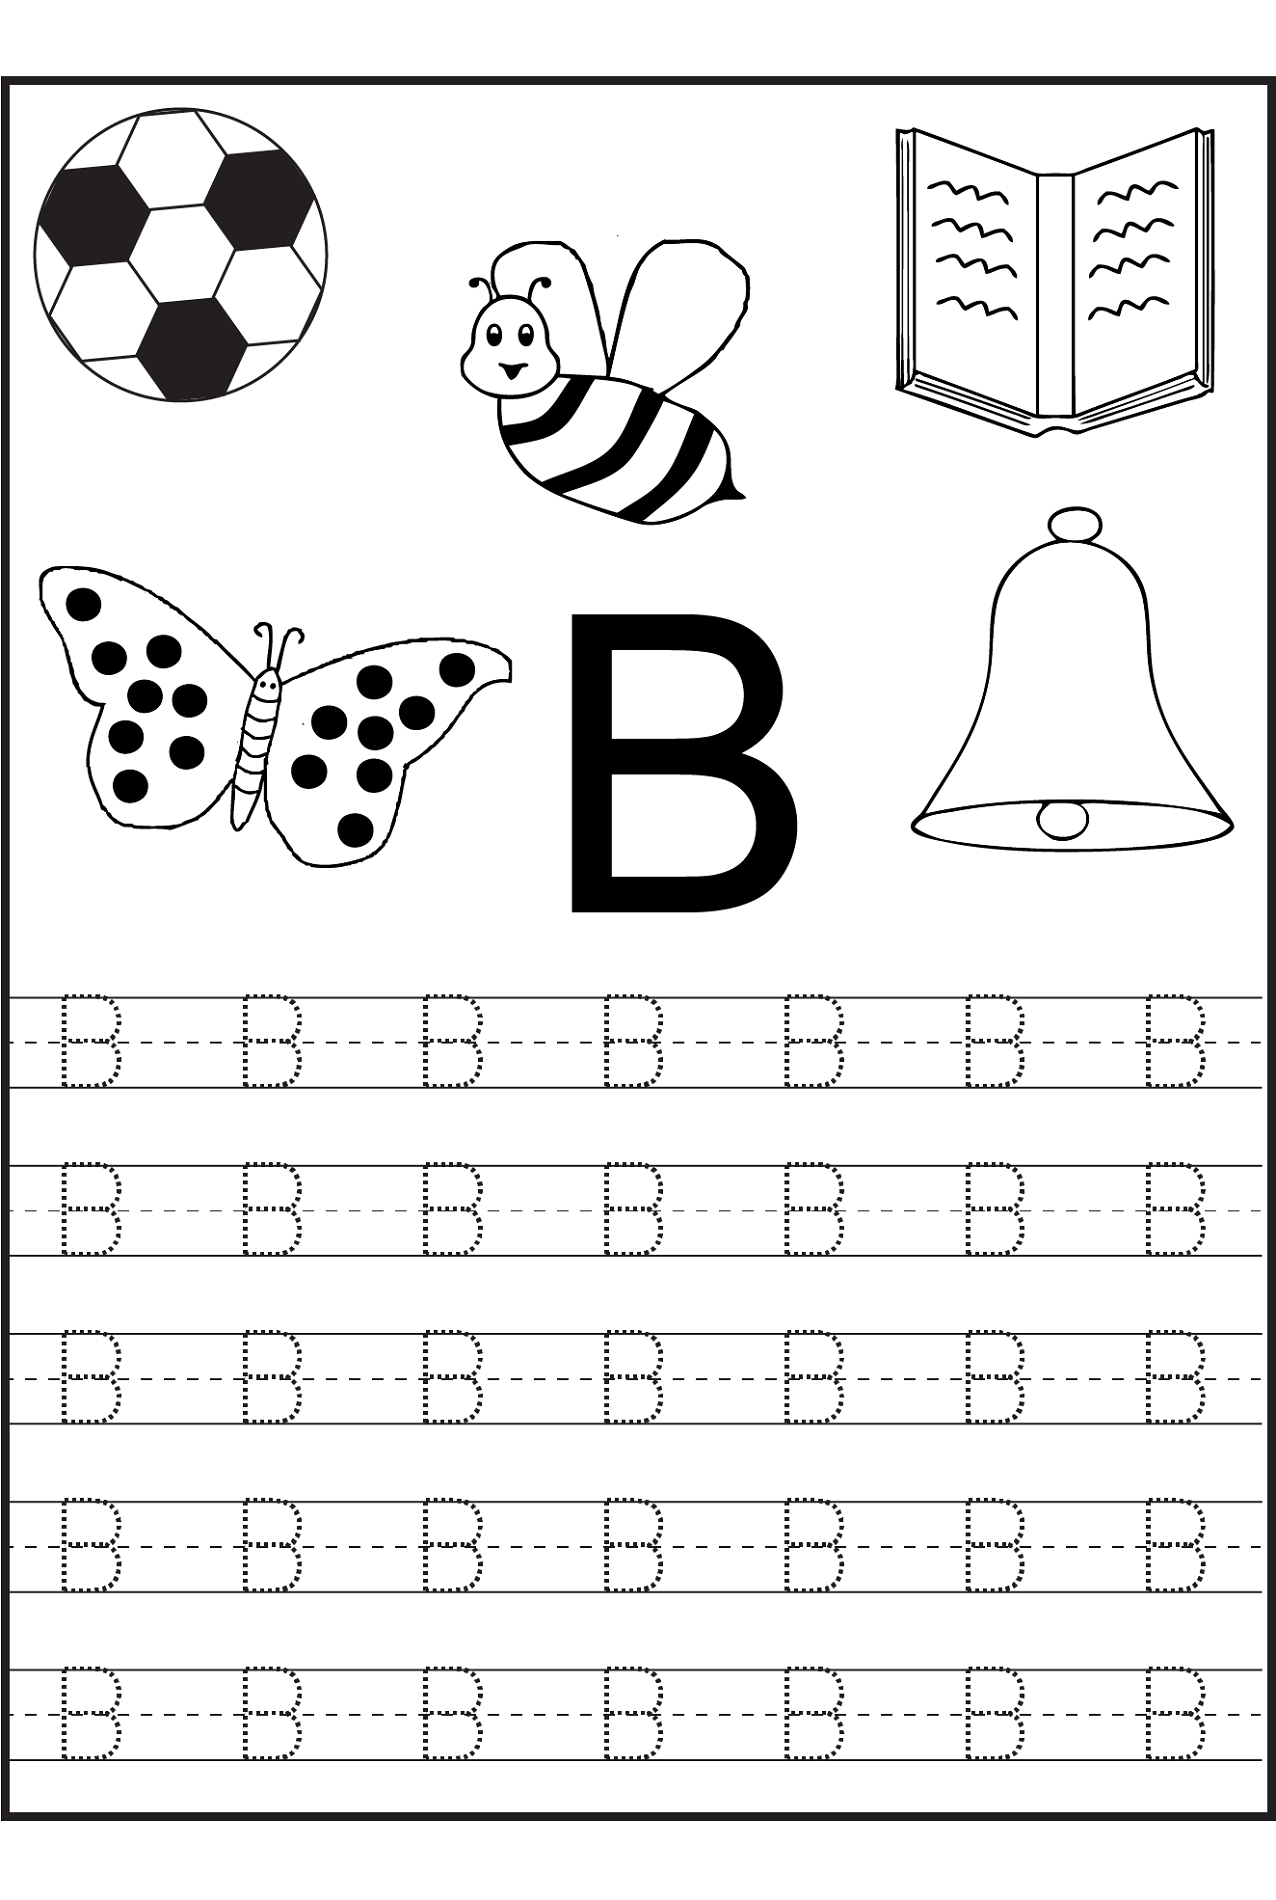 Number Preschool Worksheet Letter B 2